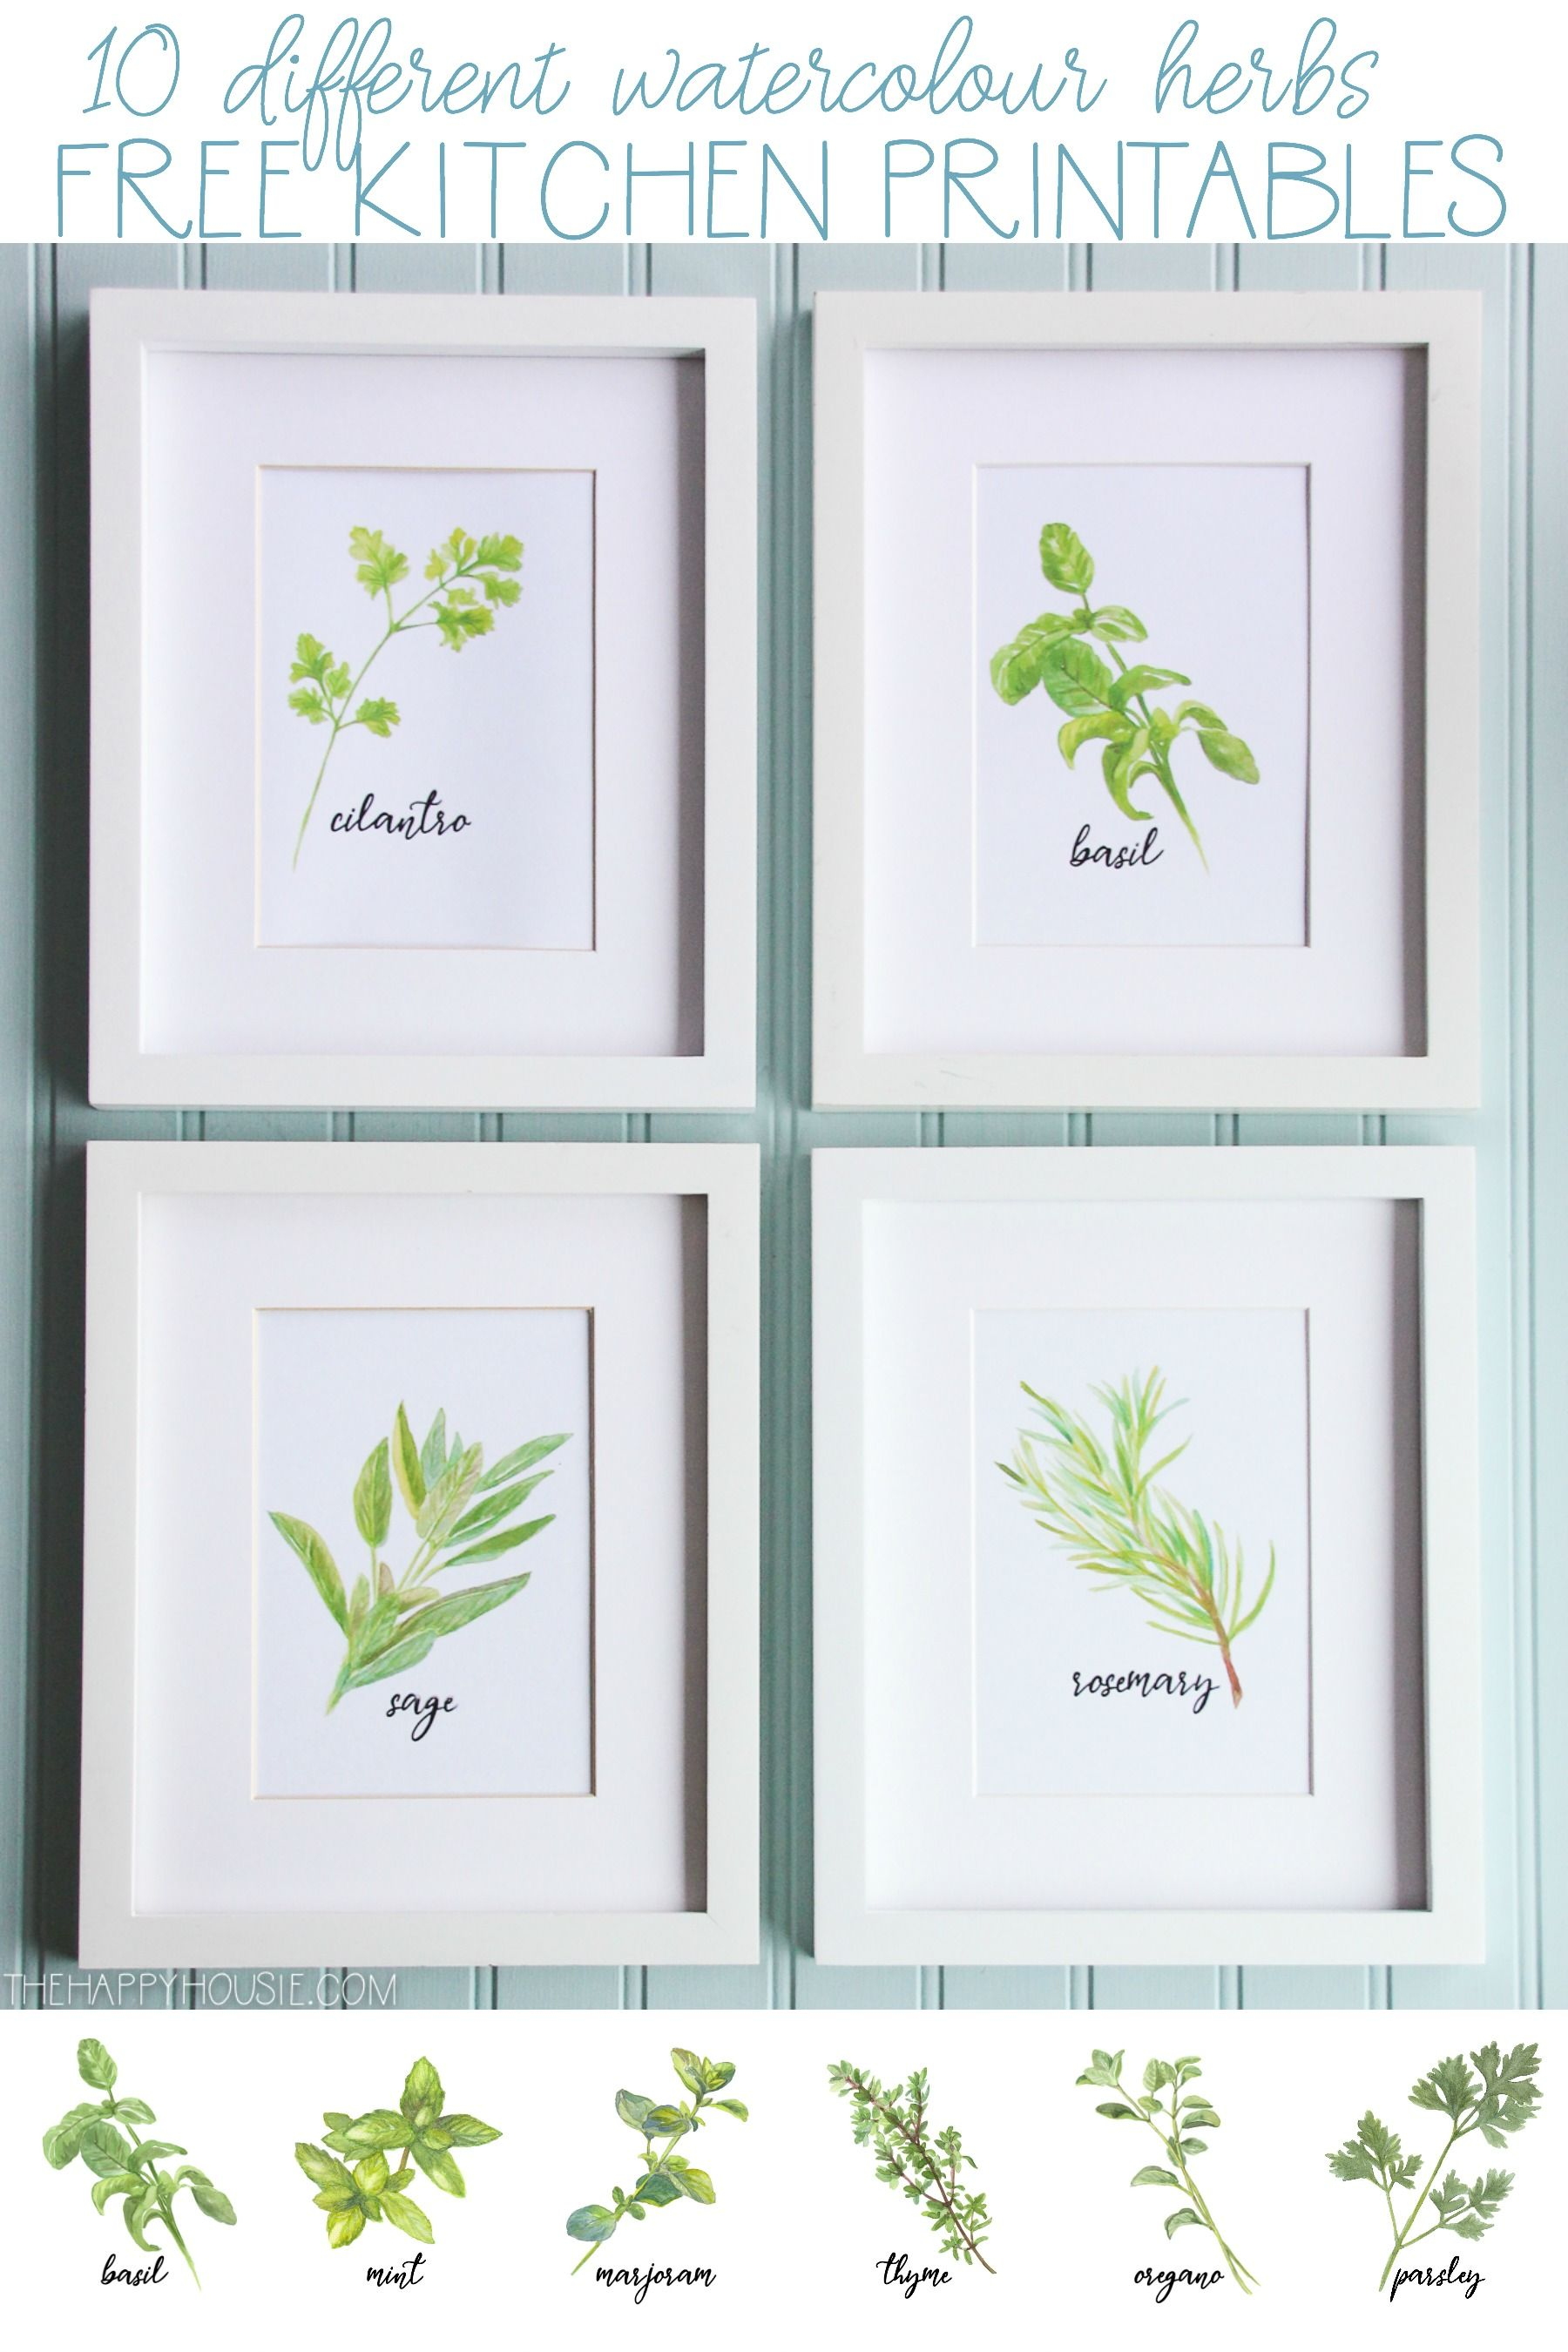 Watercolour Herb Free Kitchen Printables In 10 Designs Kitchen